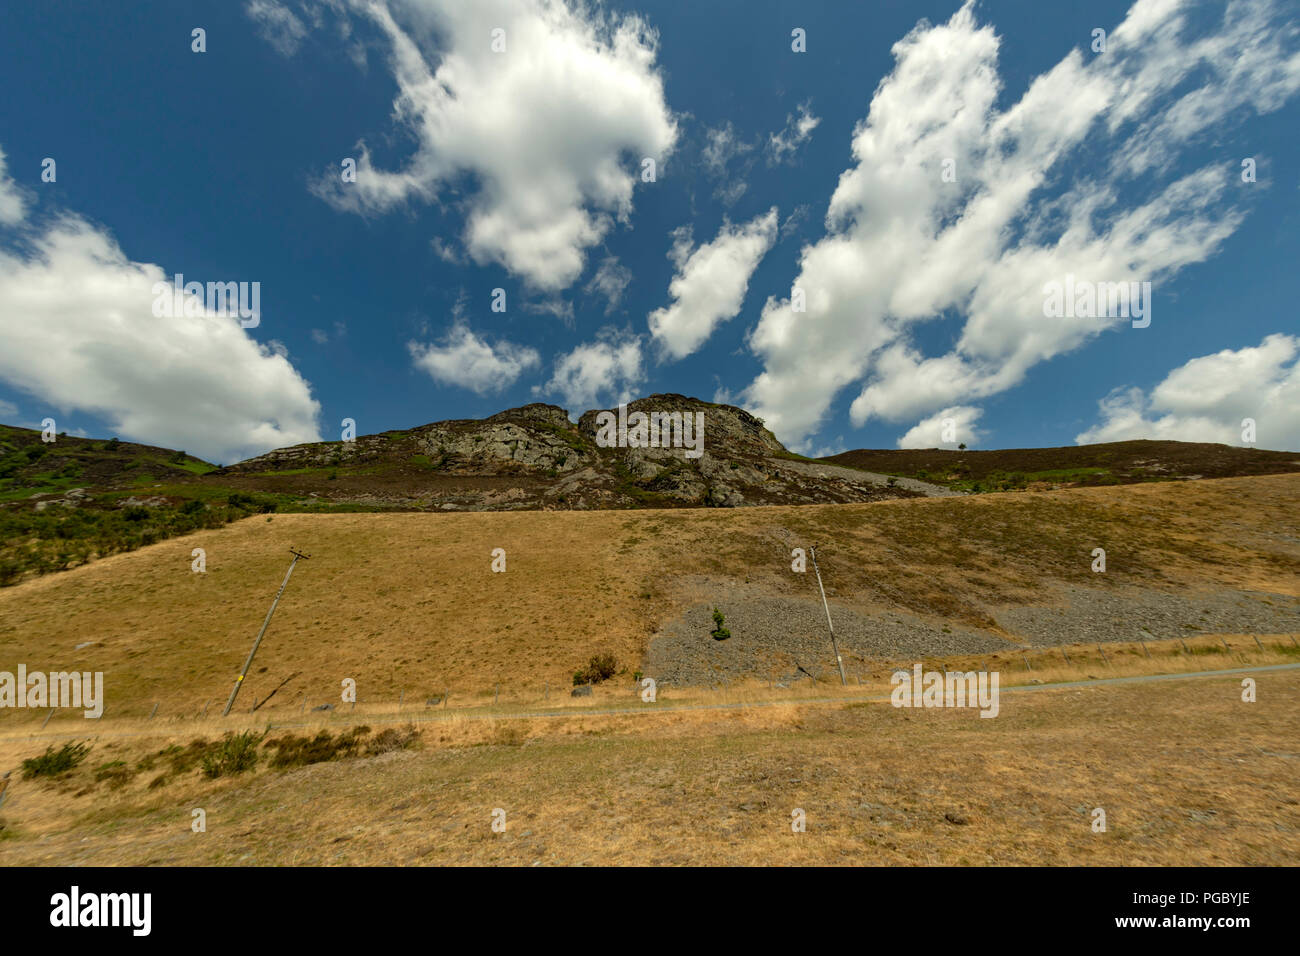 Elan Valley, stunning landscape and scenery - Stock Image